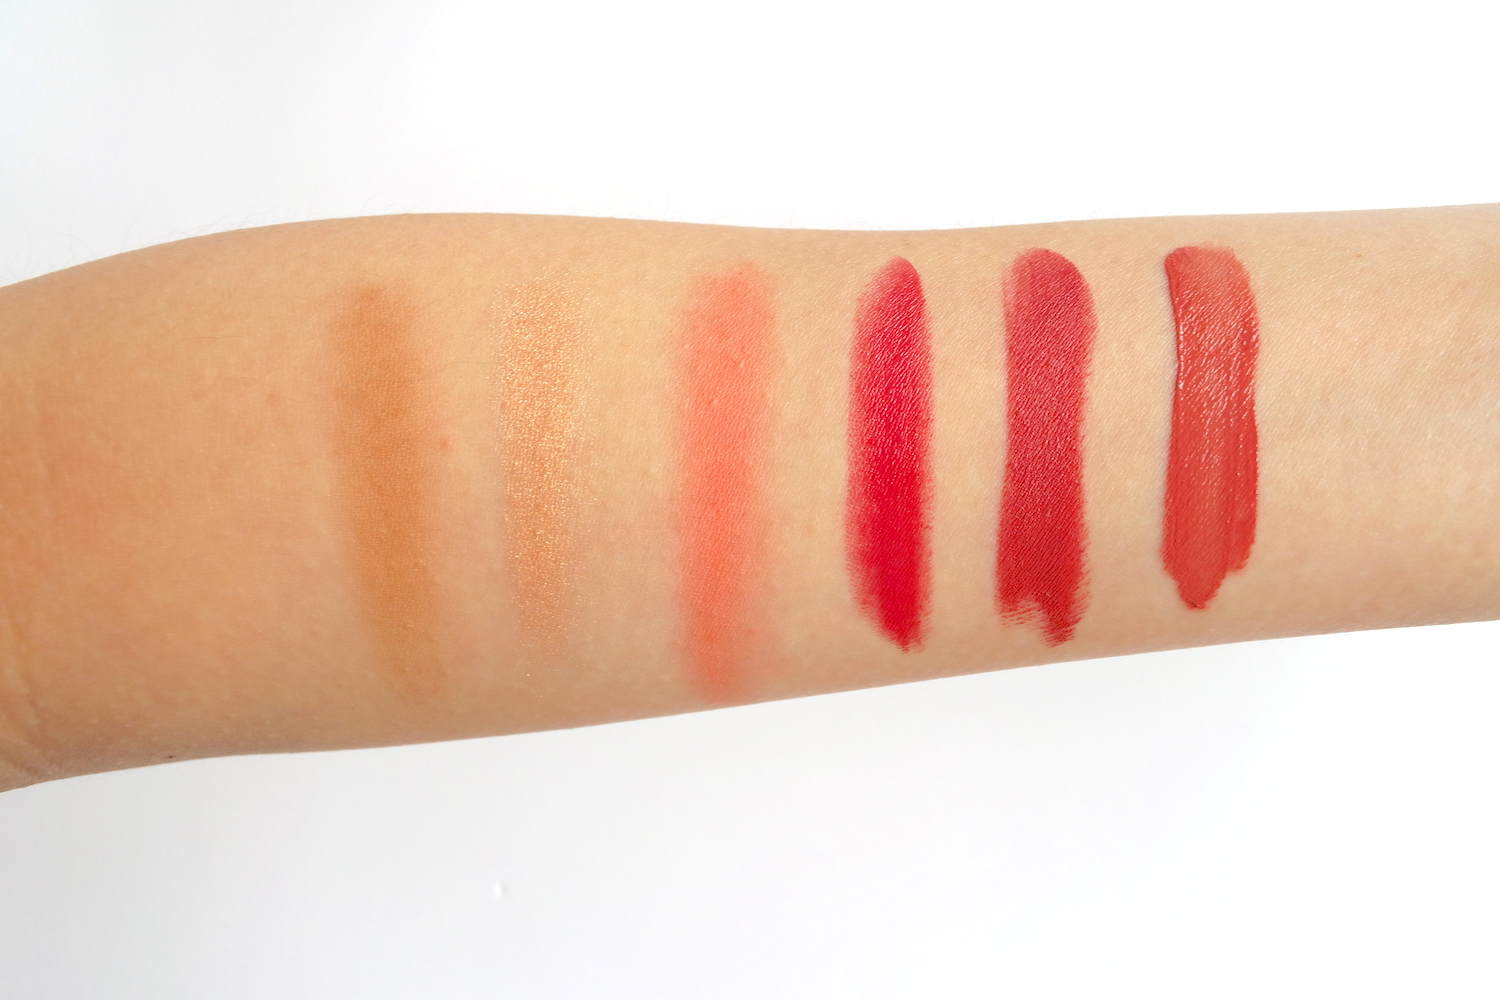 Swatches, from left: Contour, Blush and Highlight Palette in Sun Kissed (contour, highlight, blush), Velvet Lip Cream in Flirty, All-Day Intense Matte Lipstick in Charming, Long-Lasting Liquid Matte Lipstick in Sophisticated